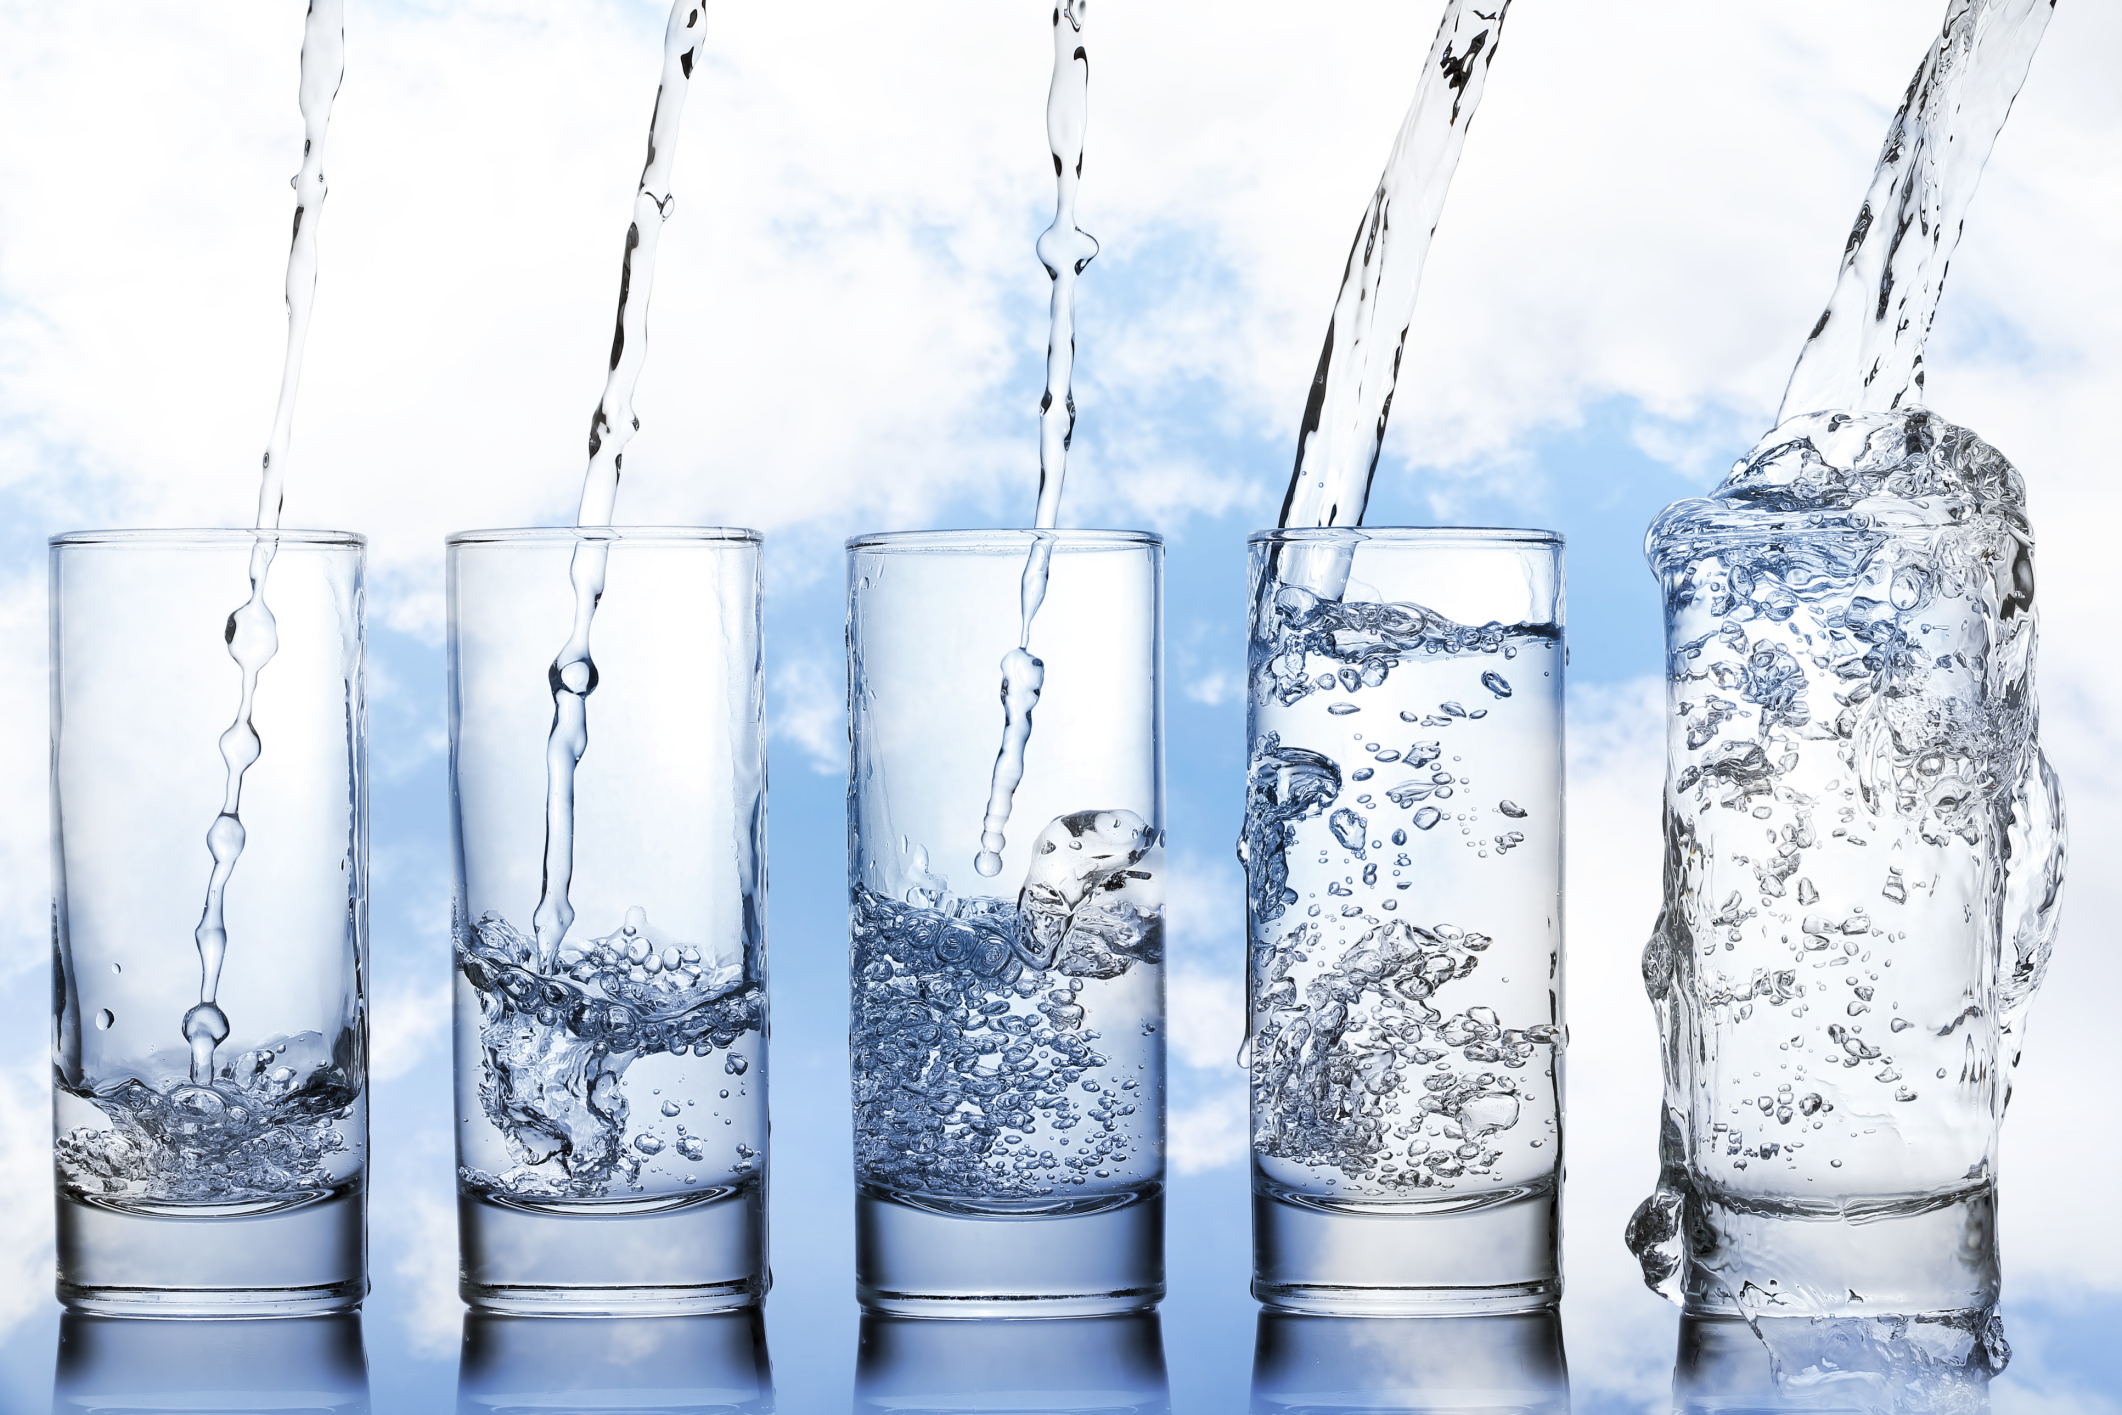 Glass has been the most natural way to store water for thousands of years.